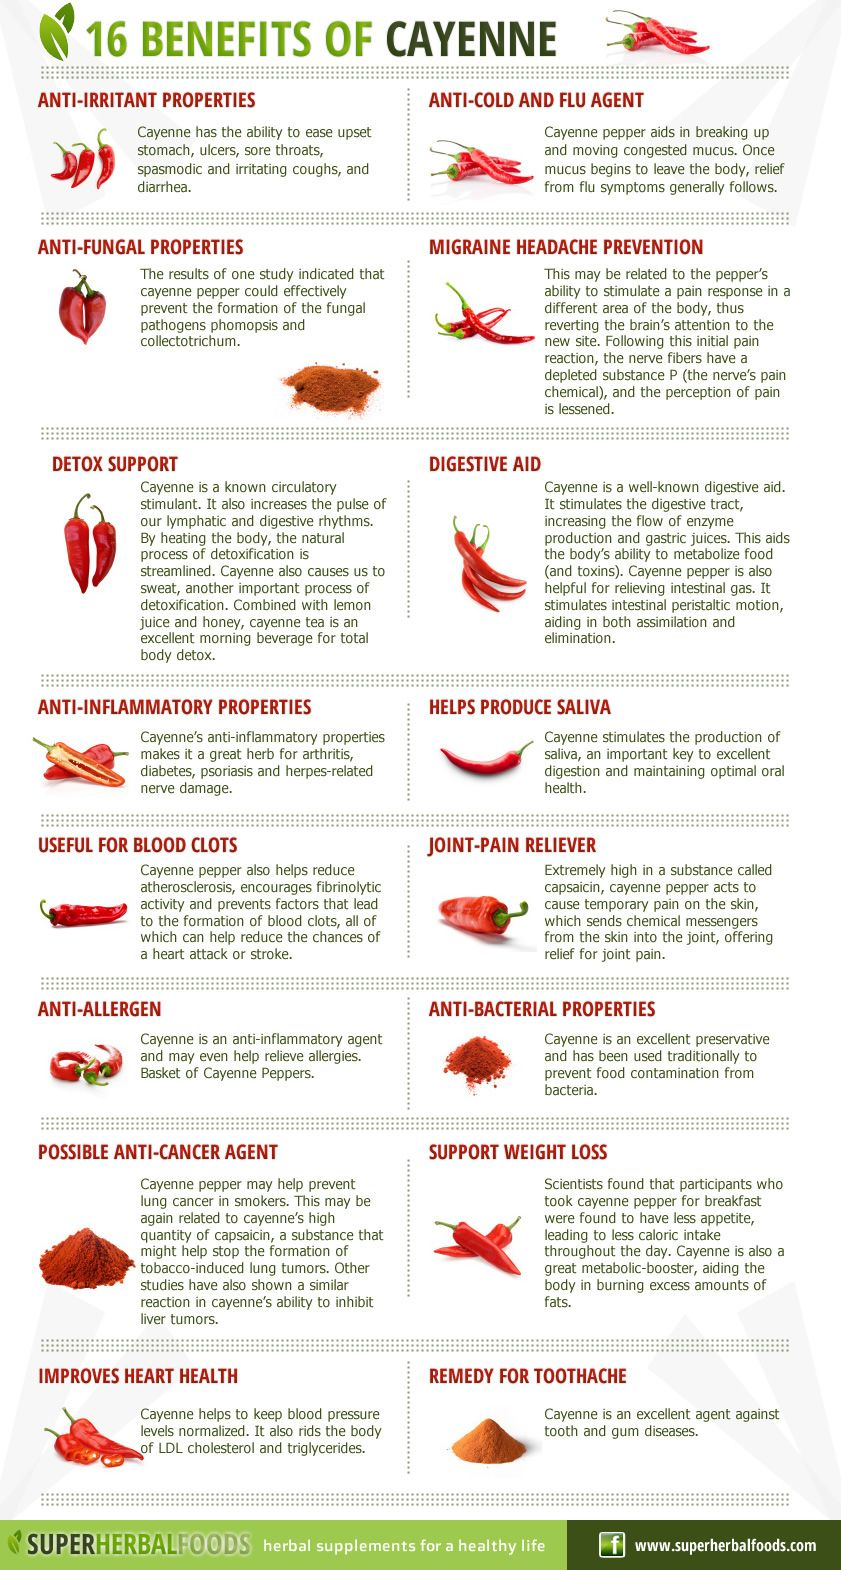 Sexual health benefits of cayenne pepper